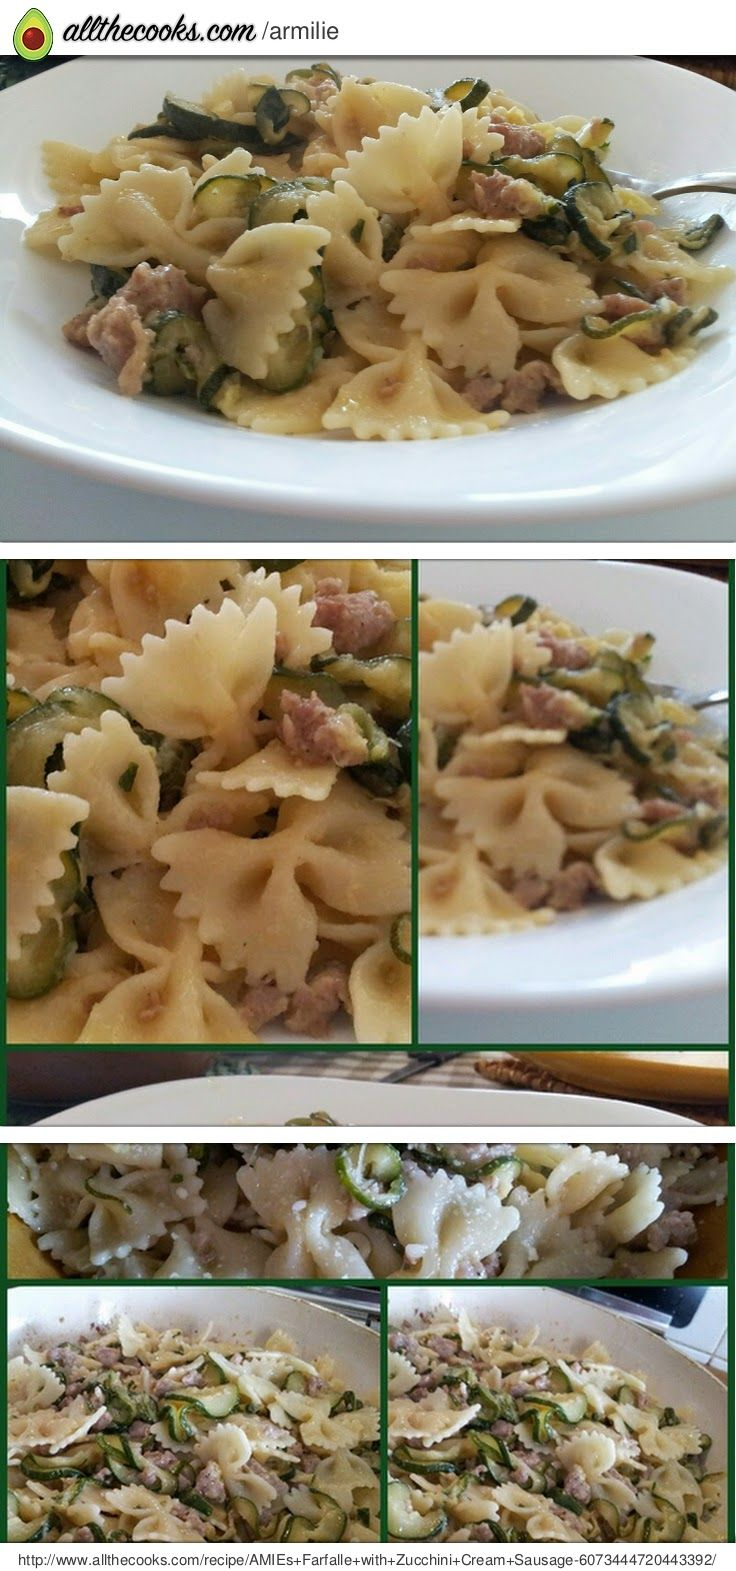 yummly farfalle with zucchini the pioneer woman farfalle with zucchini ...